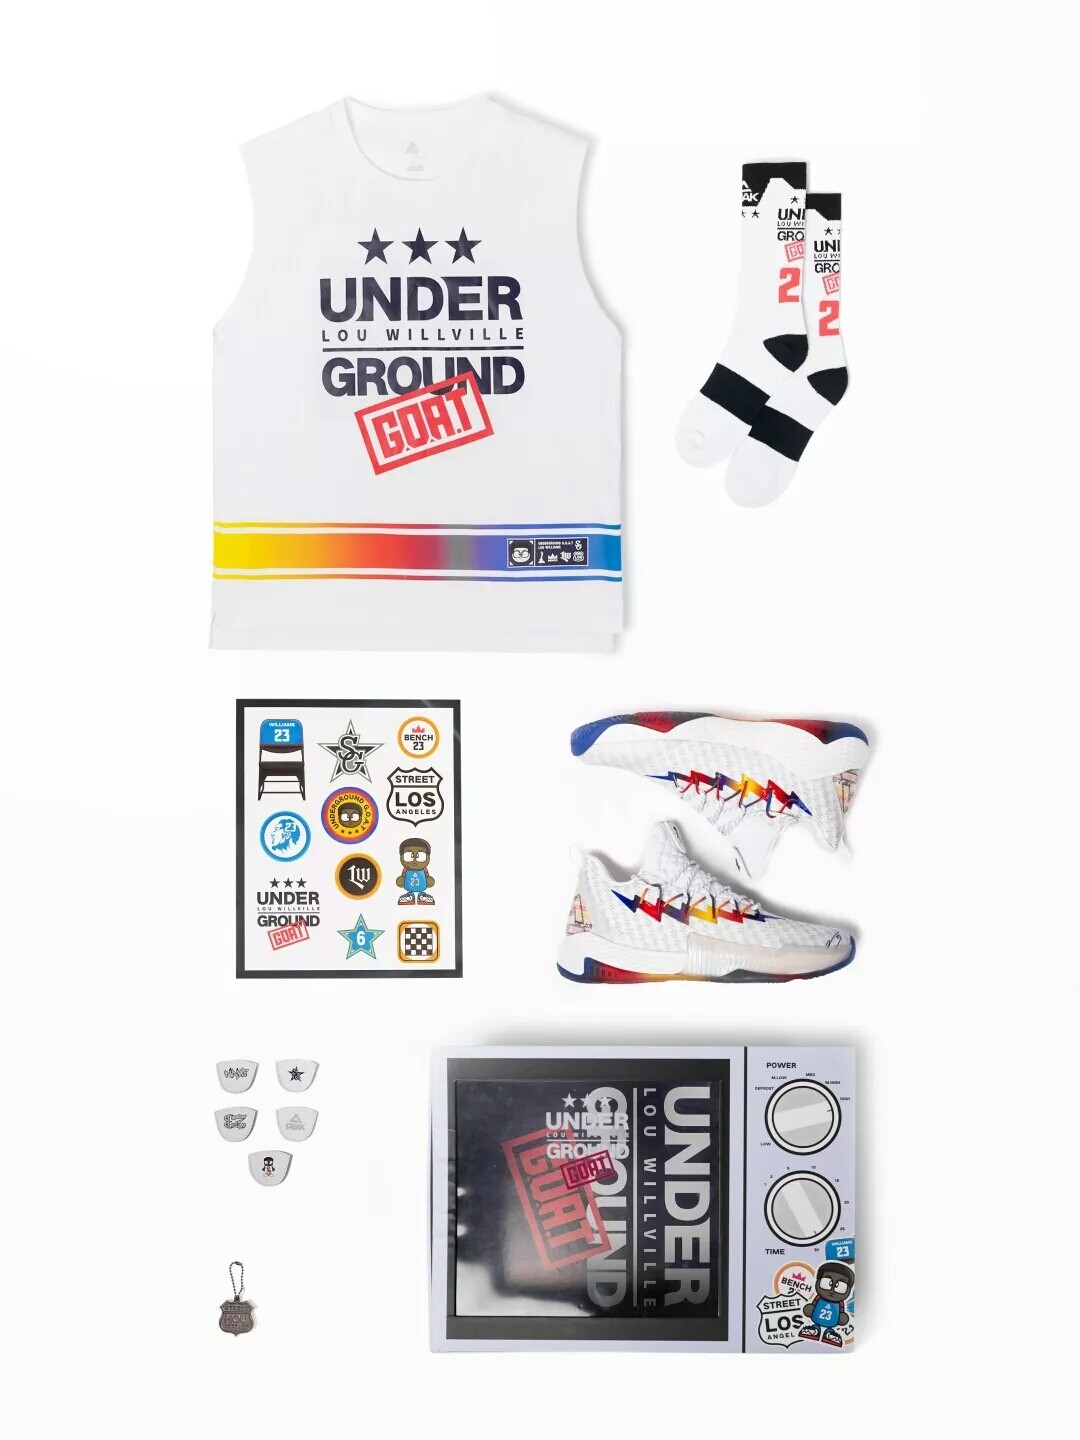 Lou Williams Crazy 6 Basketball Shoes Package Limited Edition